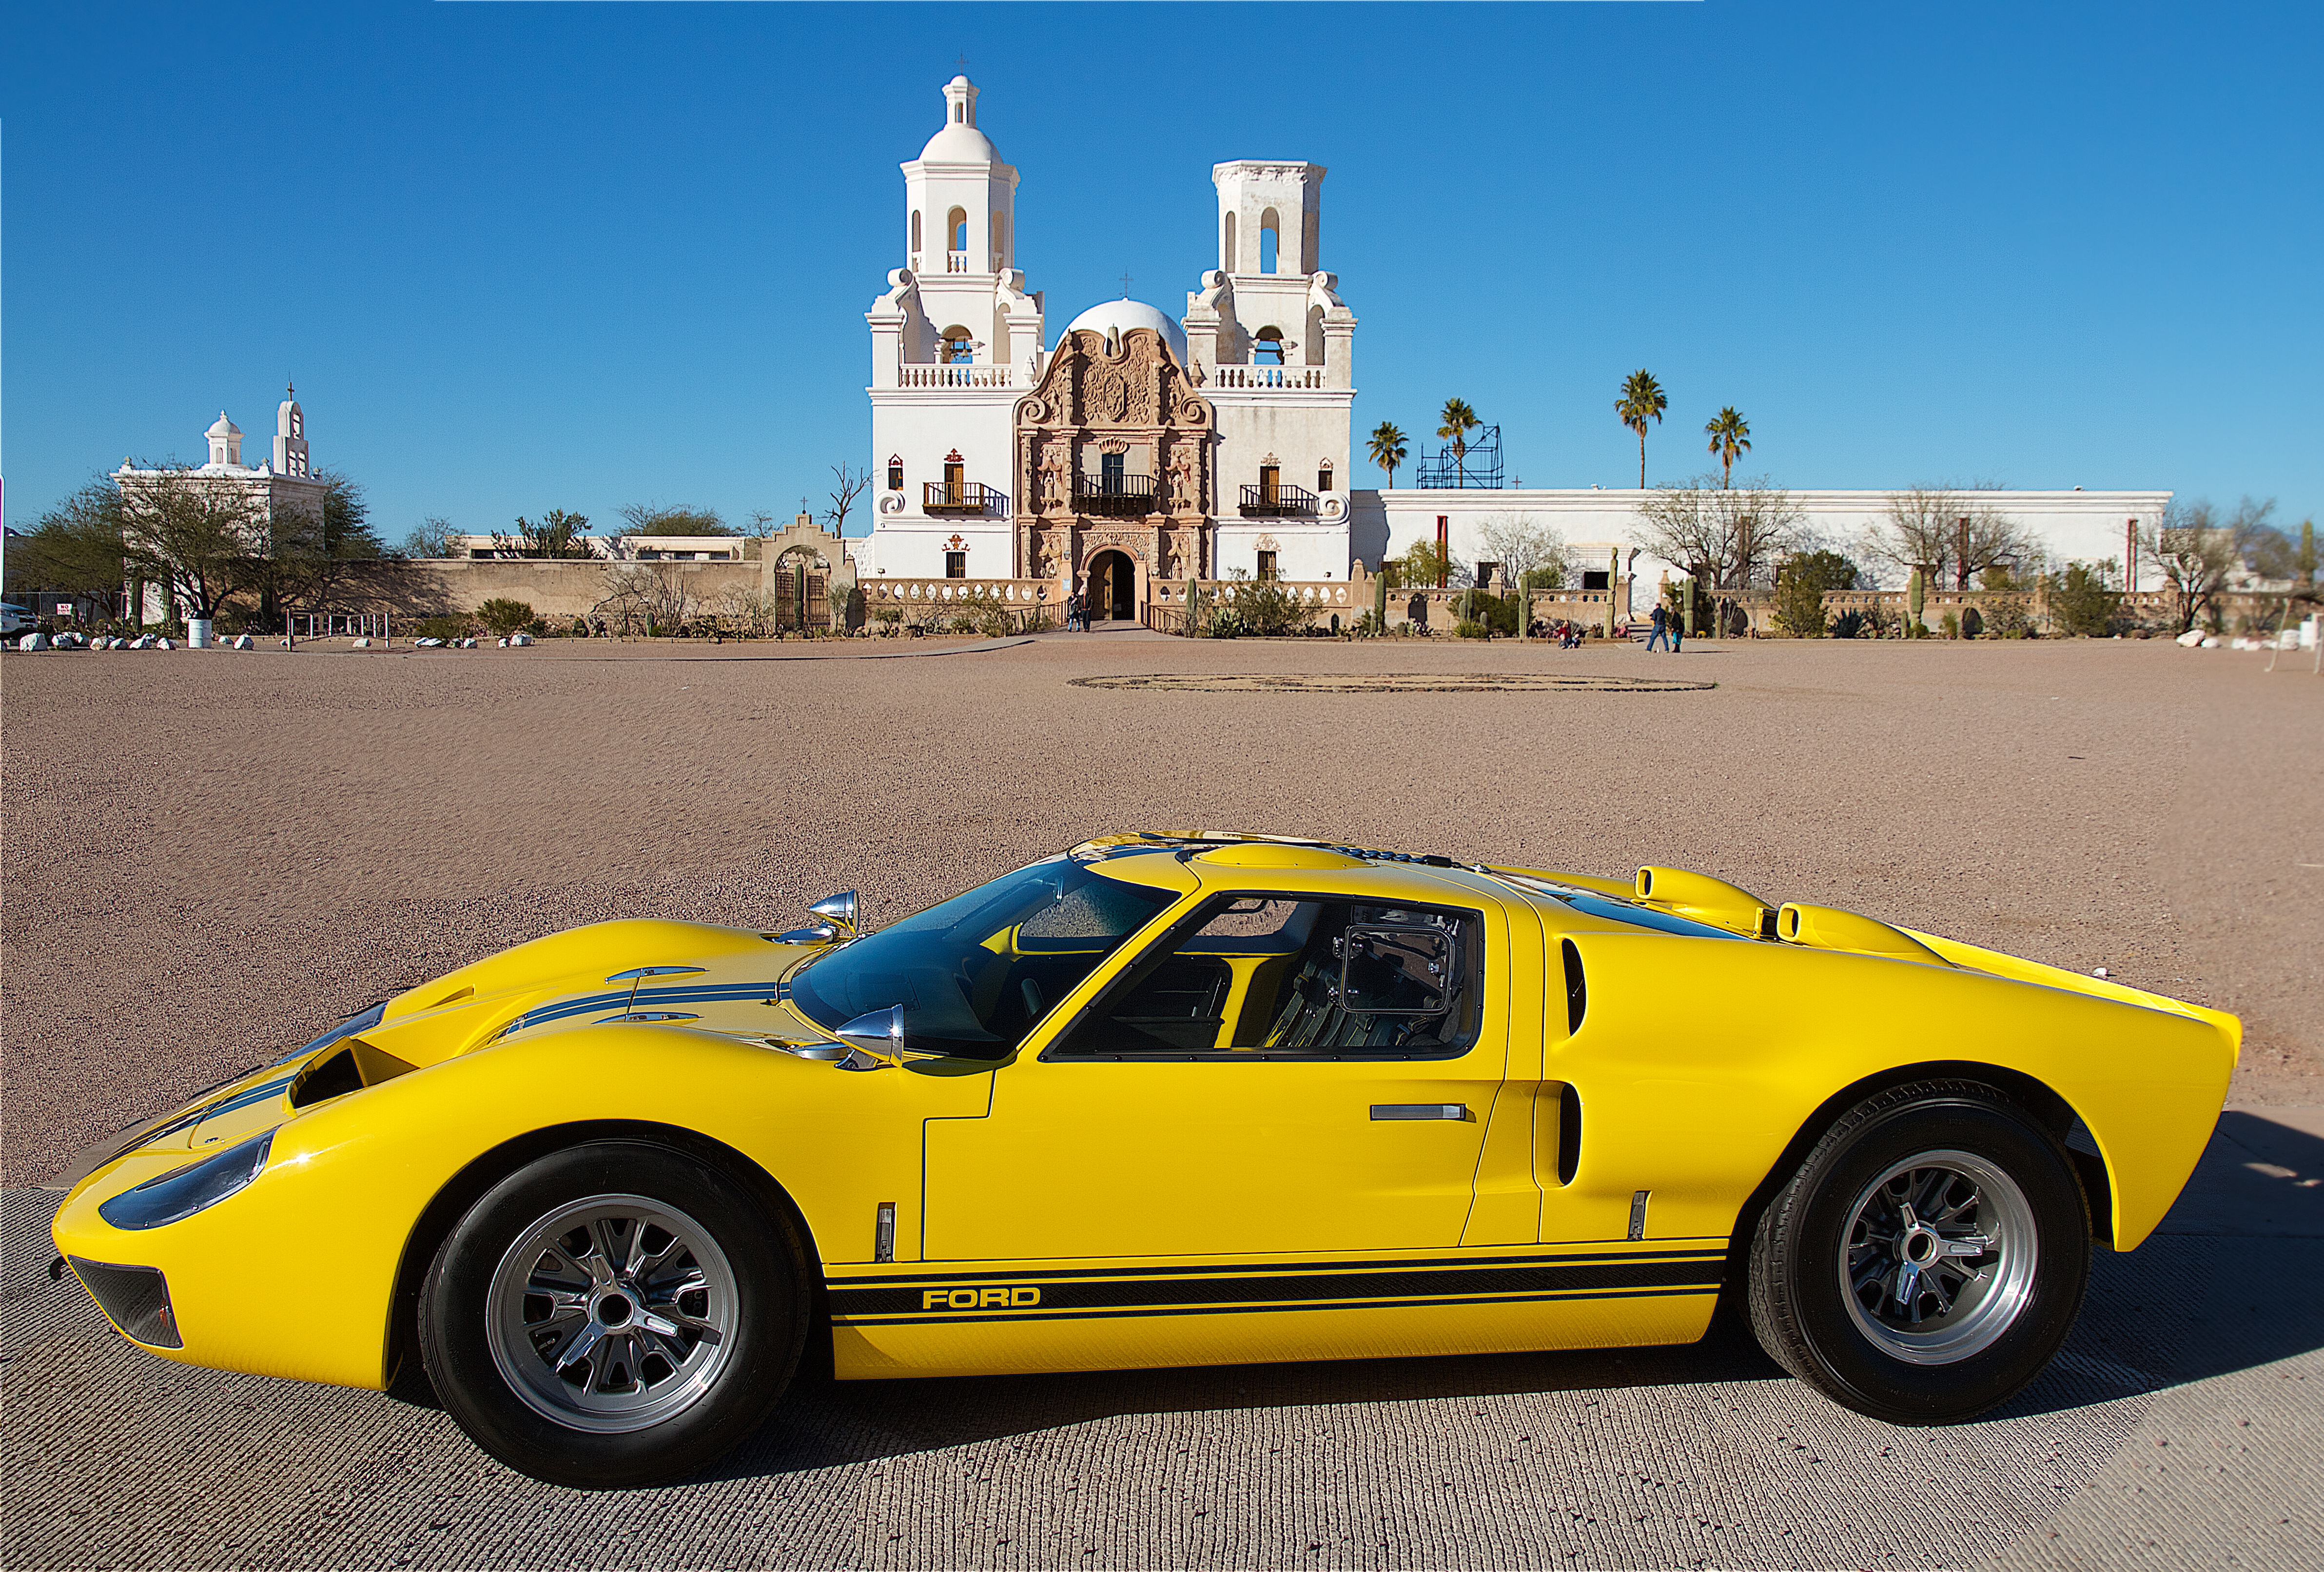 yellow and black superformance gt40 at san Xavier mission tucson